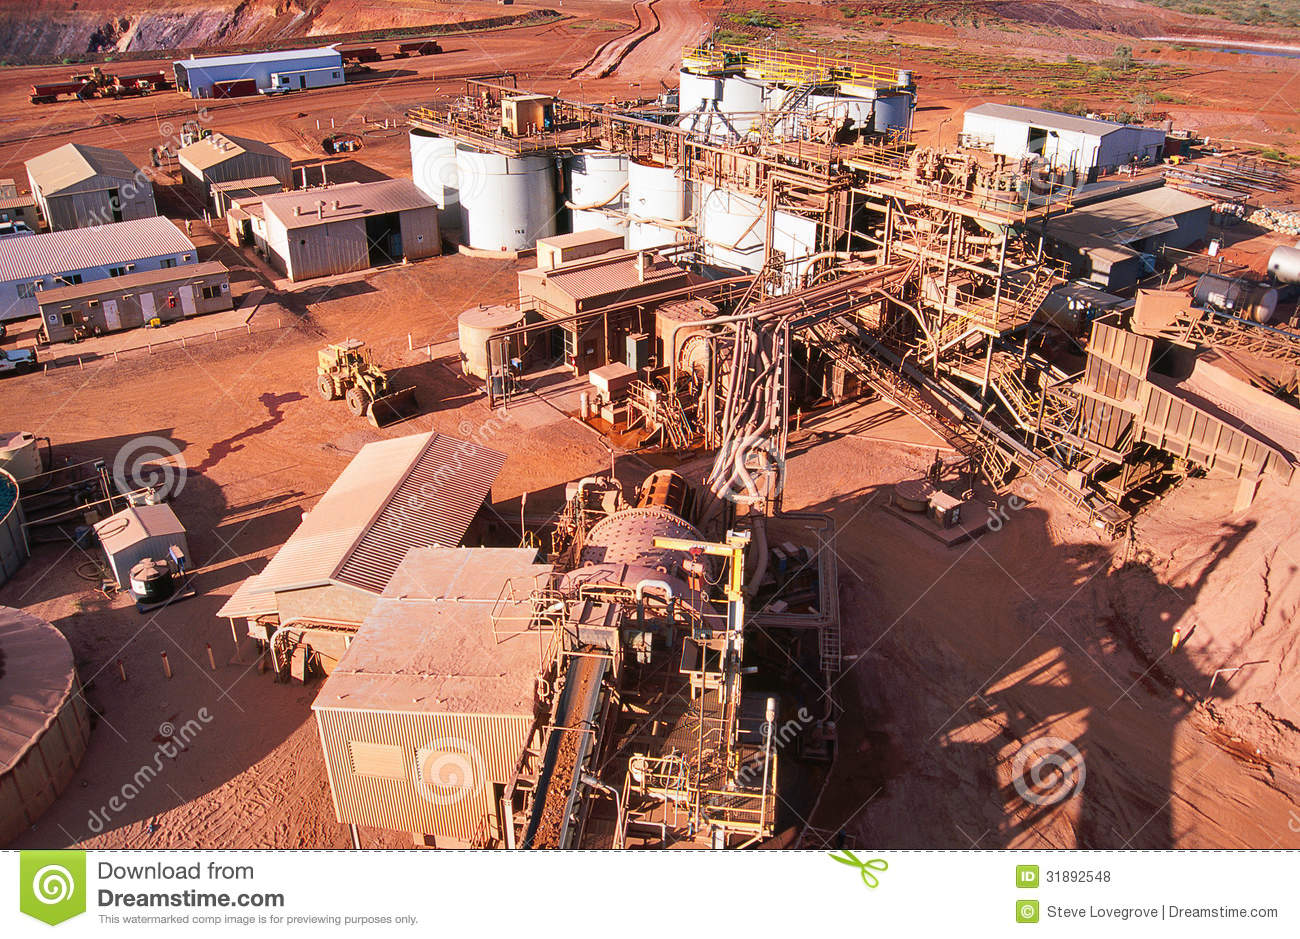 Royalty Free Stock Photos Gold Mining View Processing Plant Desert Australia Image31892548 additionally Ducted furthermore Hvac And The Residential Remodel Mini Split Vs Forced Air besides Minisplits besides Air Conditioning Service And Moldy Hvac Systems. on heating and air ducts